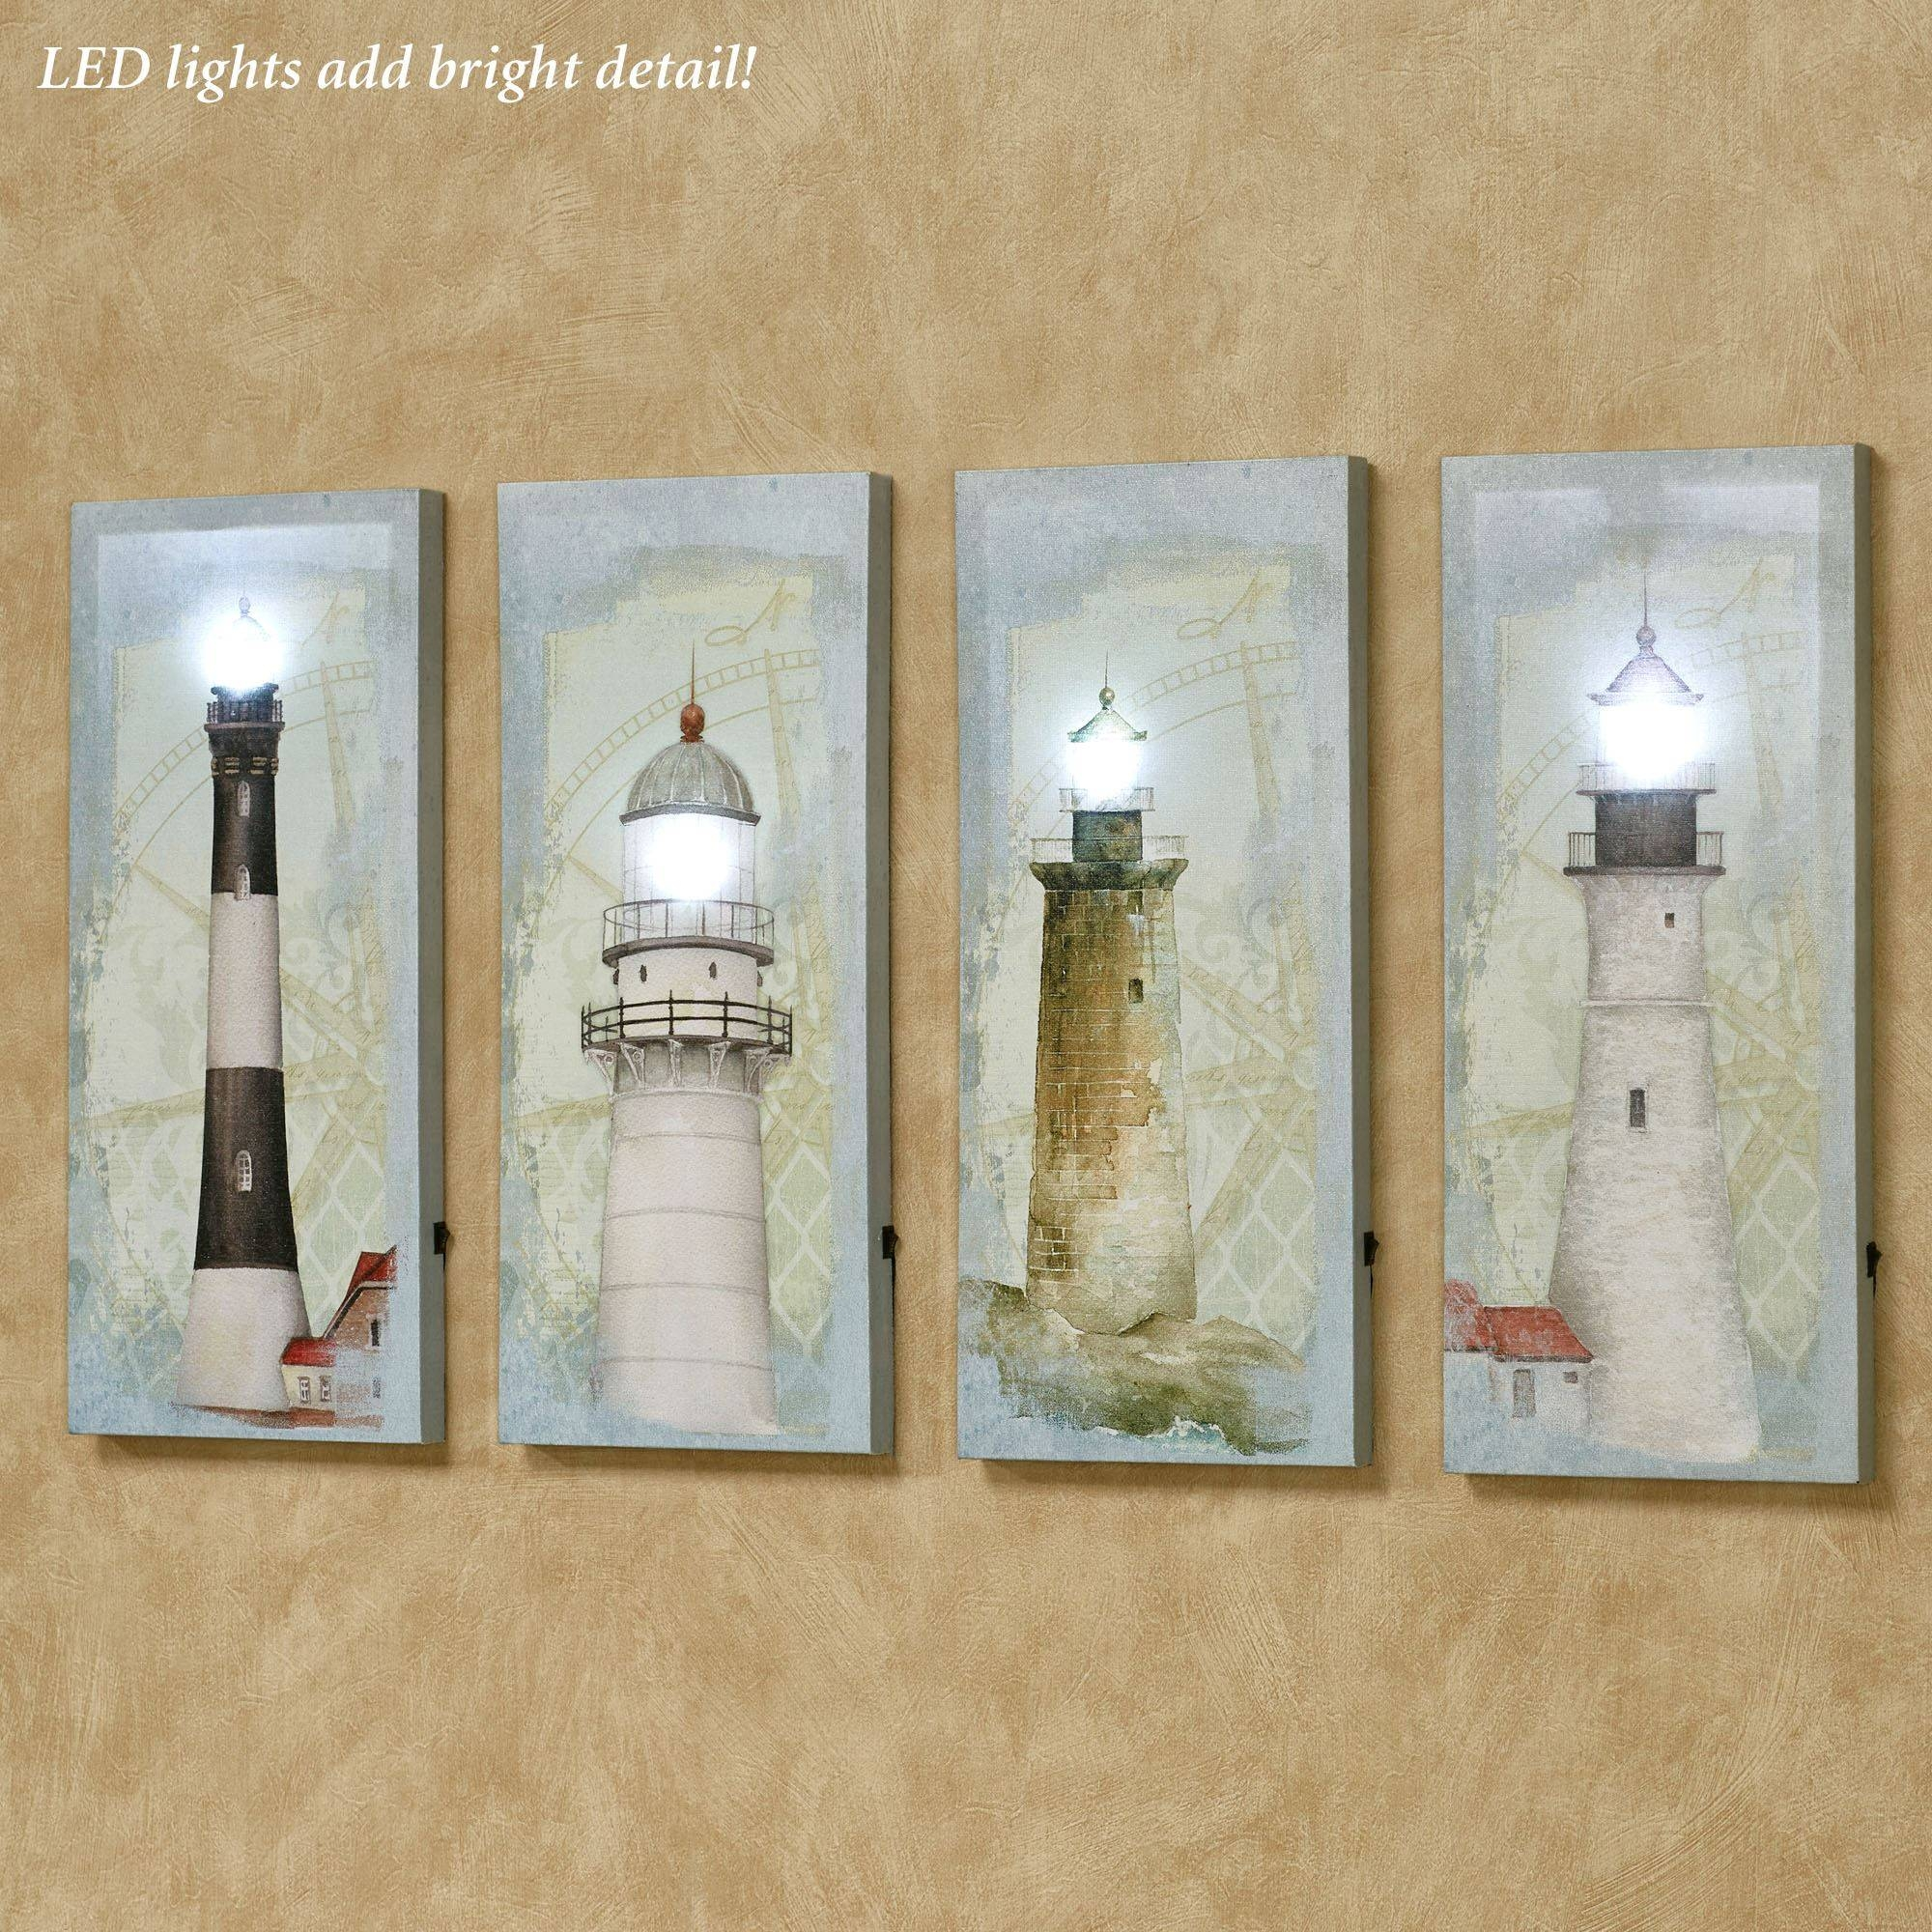 Coastal Lighthouse Led Lighted Canvas Wall Art Set Within Newest Coastal Wall Art Canvas (View 2 of 20)